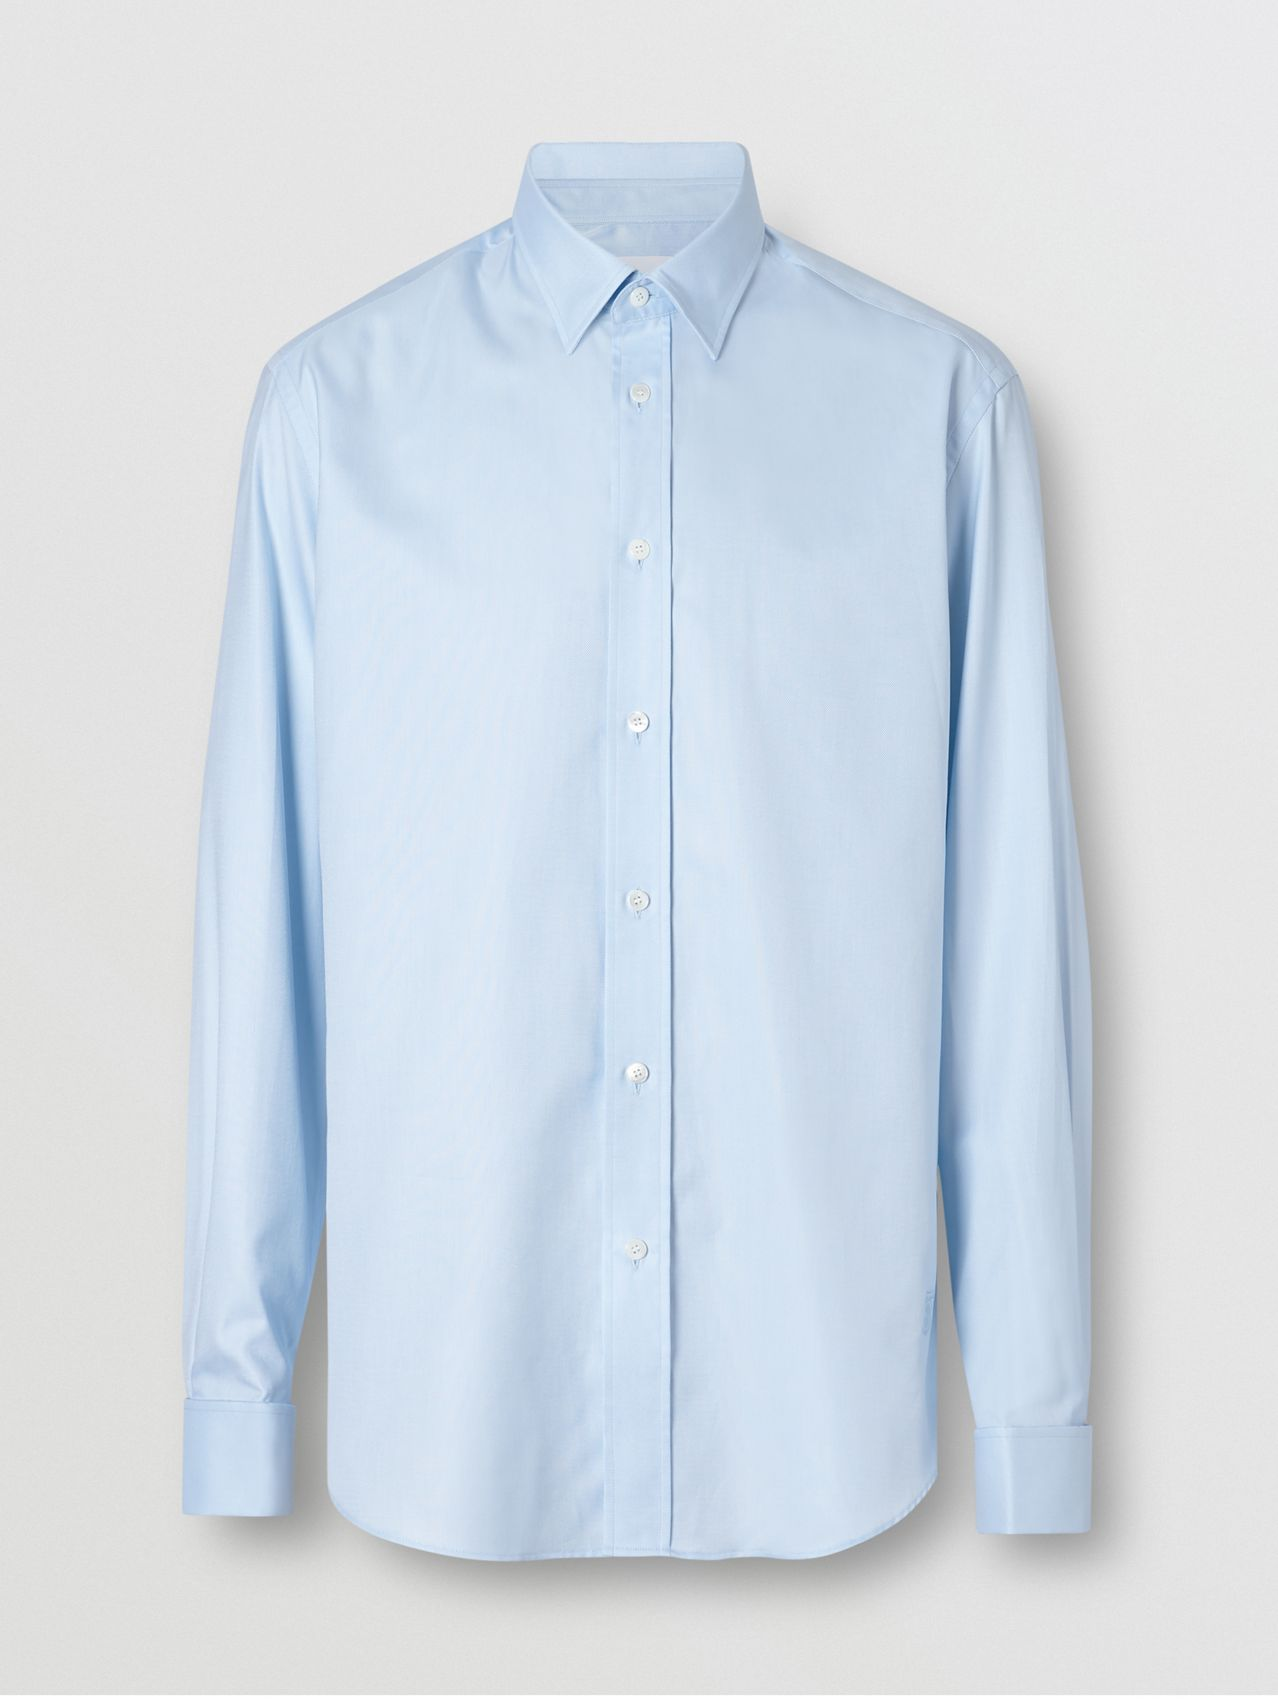 Classic Fit Monogram Motif Cotton Oxford Shirt in Pale Blue